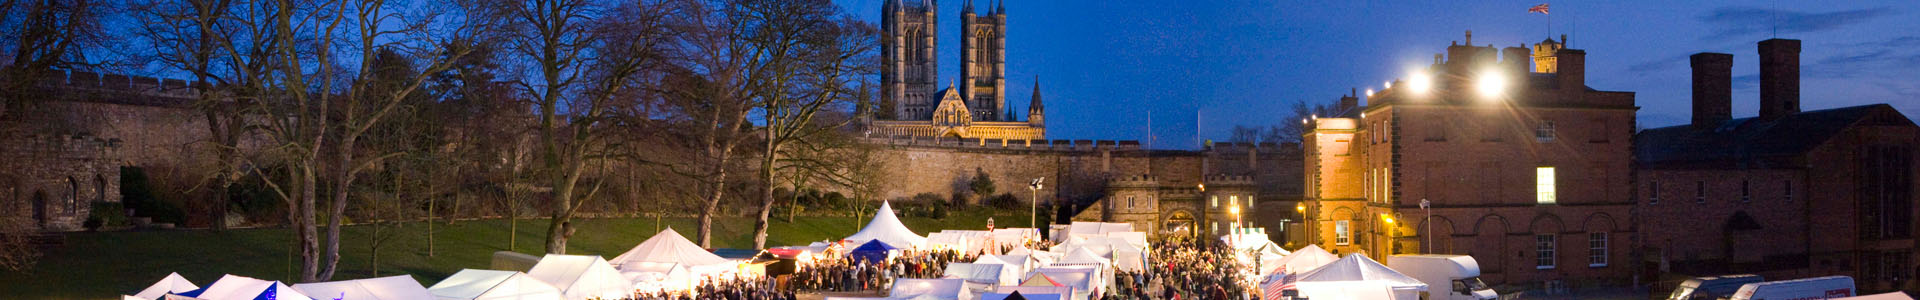 Caste Grounds - Lincoln Christmas Market